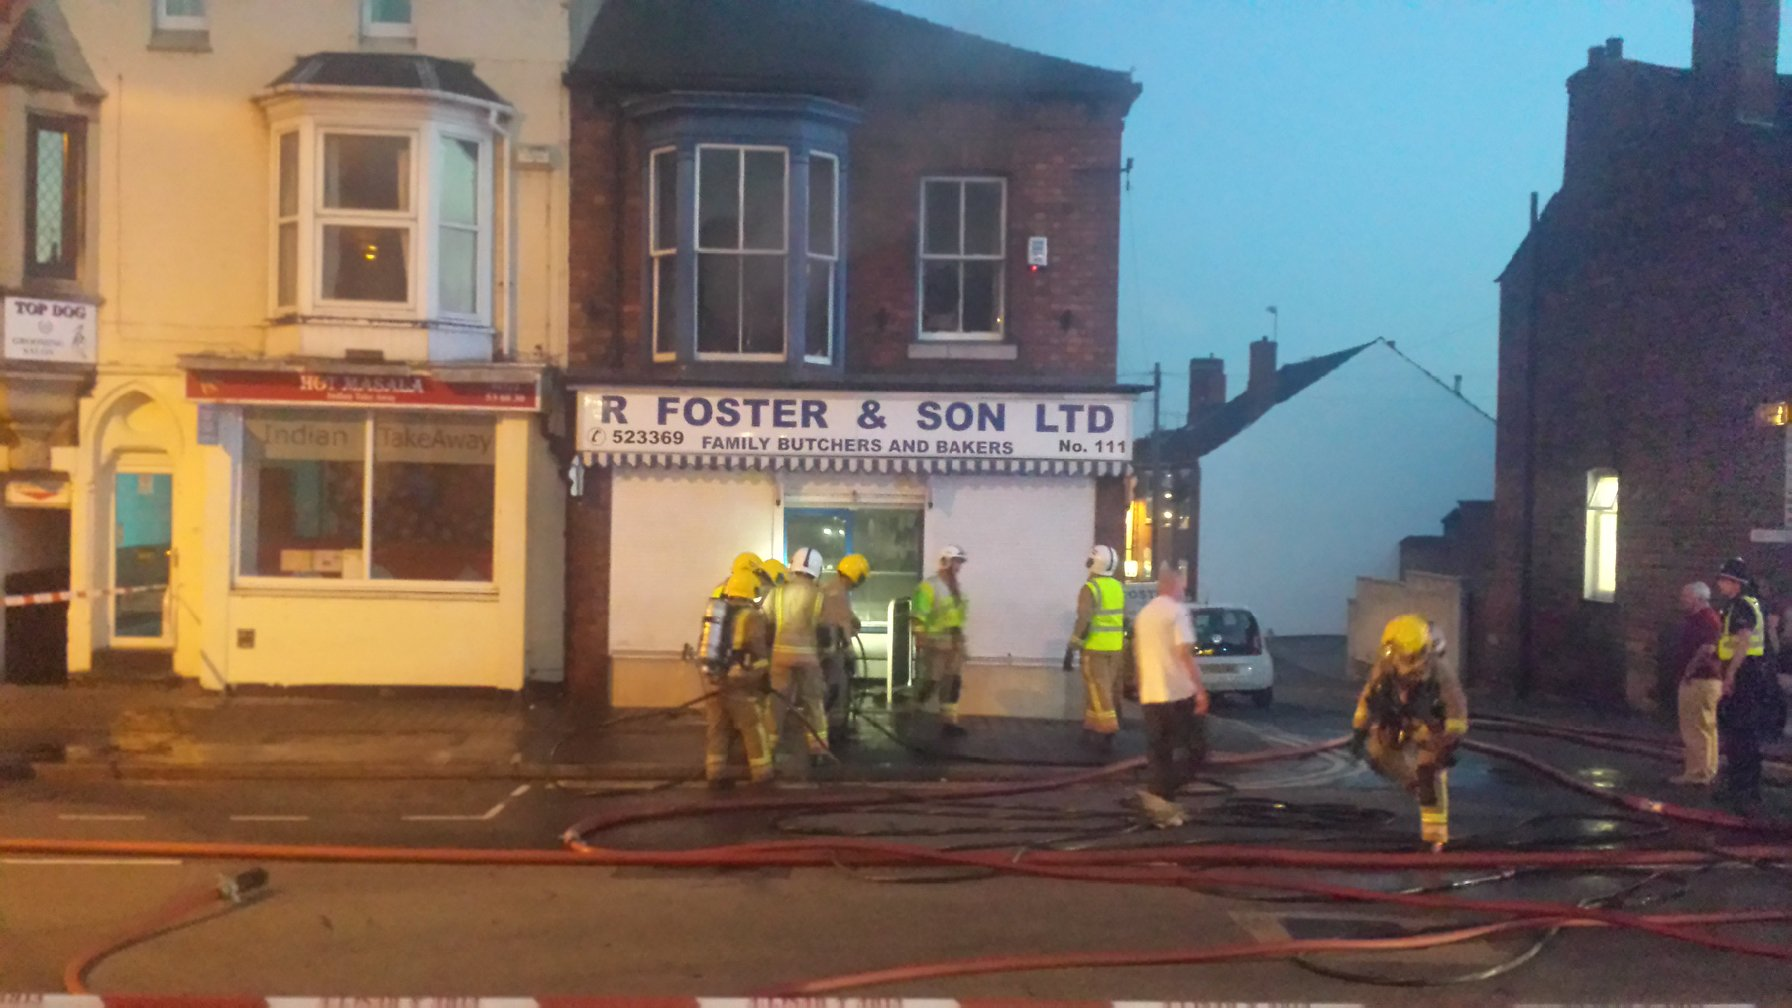 Fire Crews have extinguished the fire and the Foster Brothers check how bad the damage is